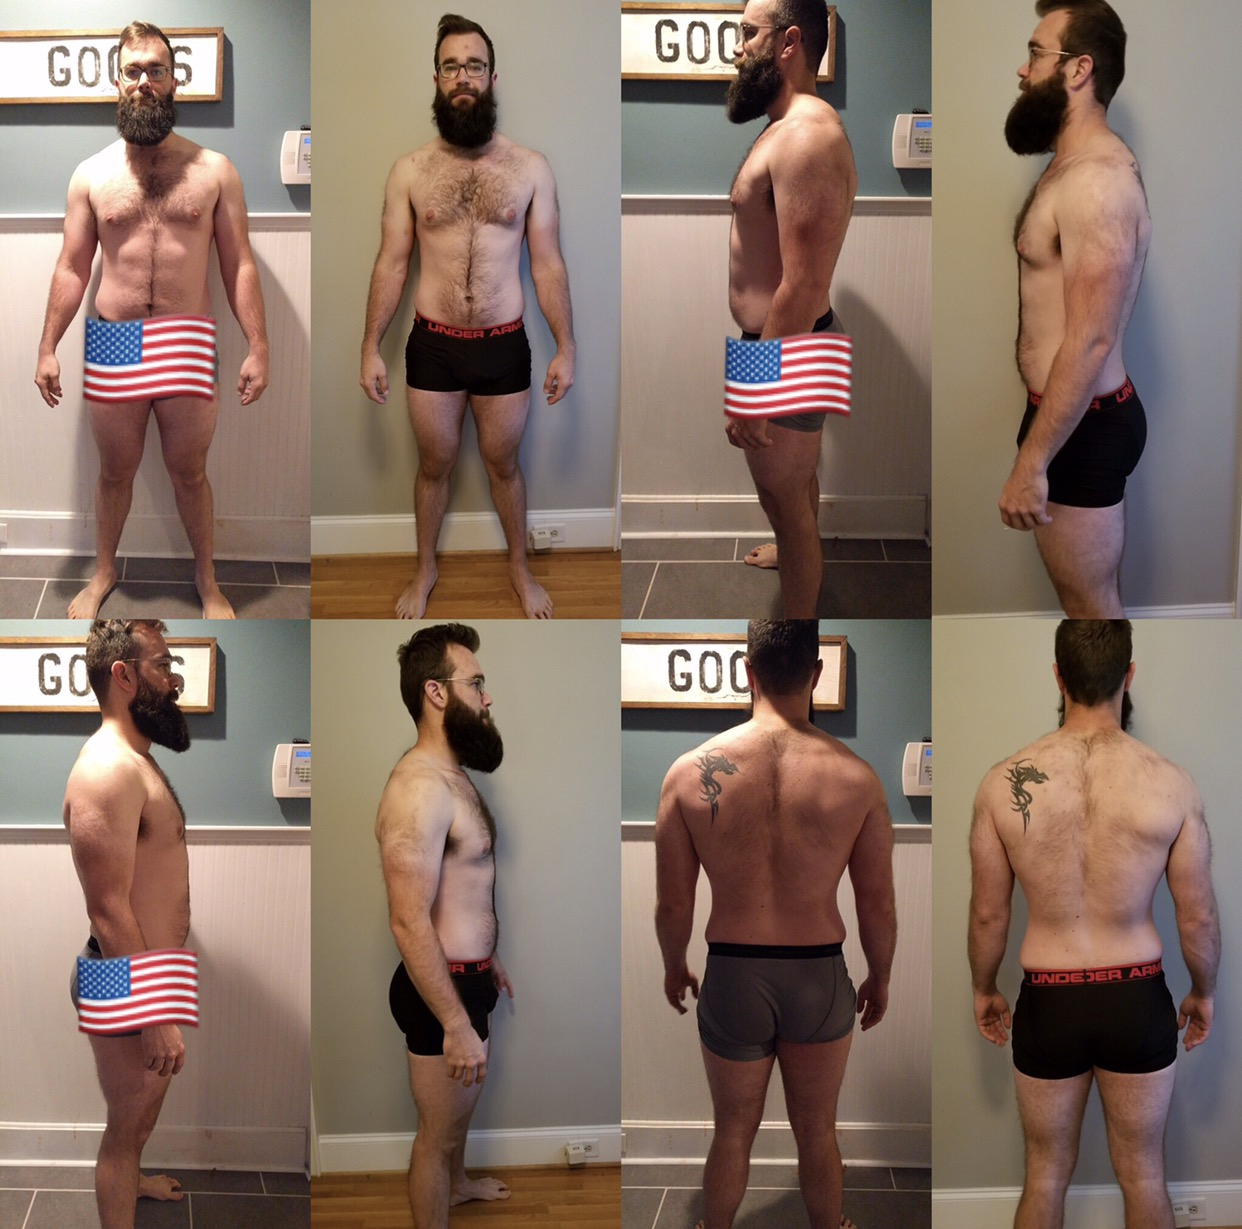 Scott G. - Diet - Before 1st Attempt260lbsAfter 1st Attempt:237lbs